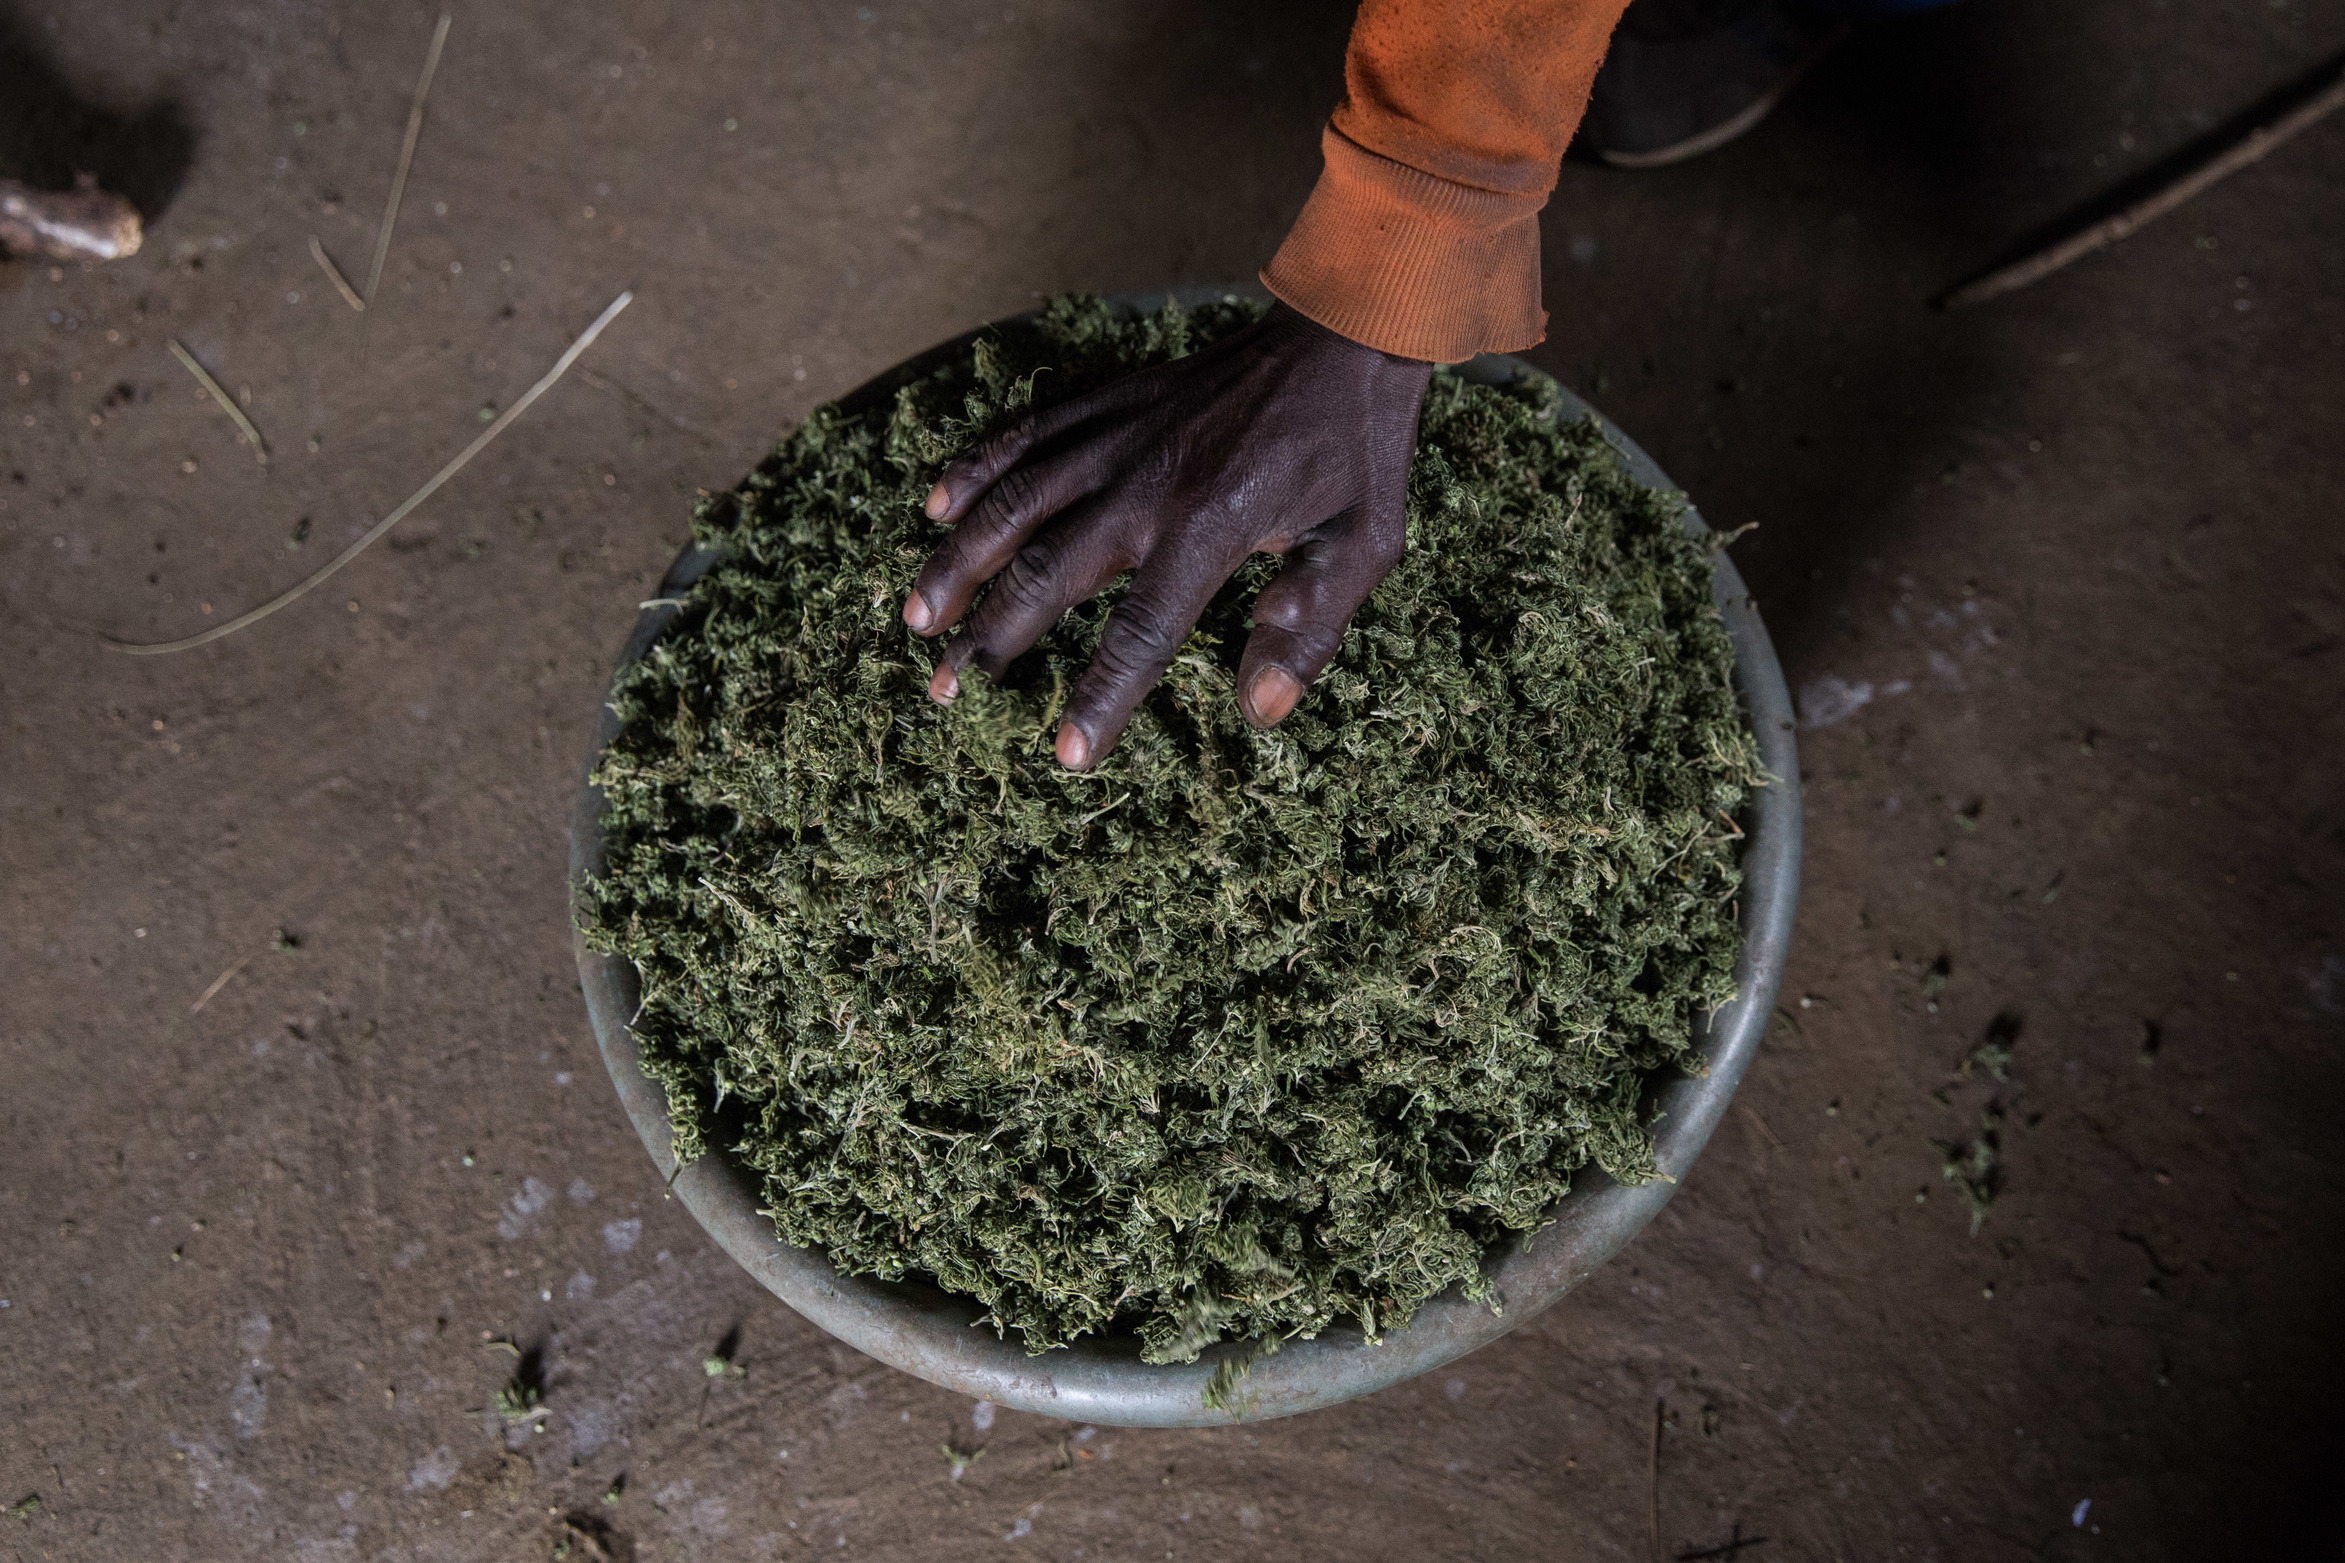 Dagga prohibition needs to end